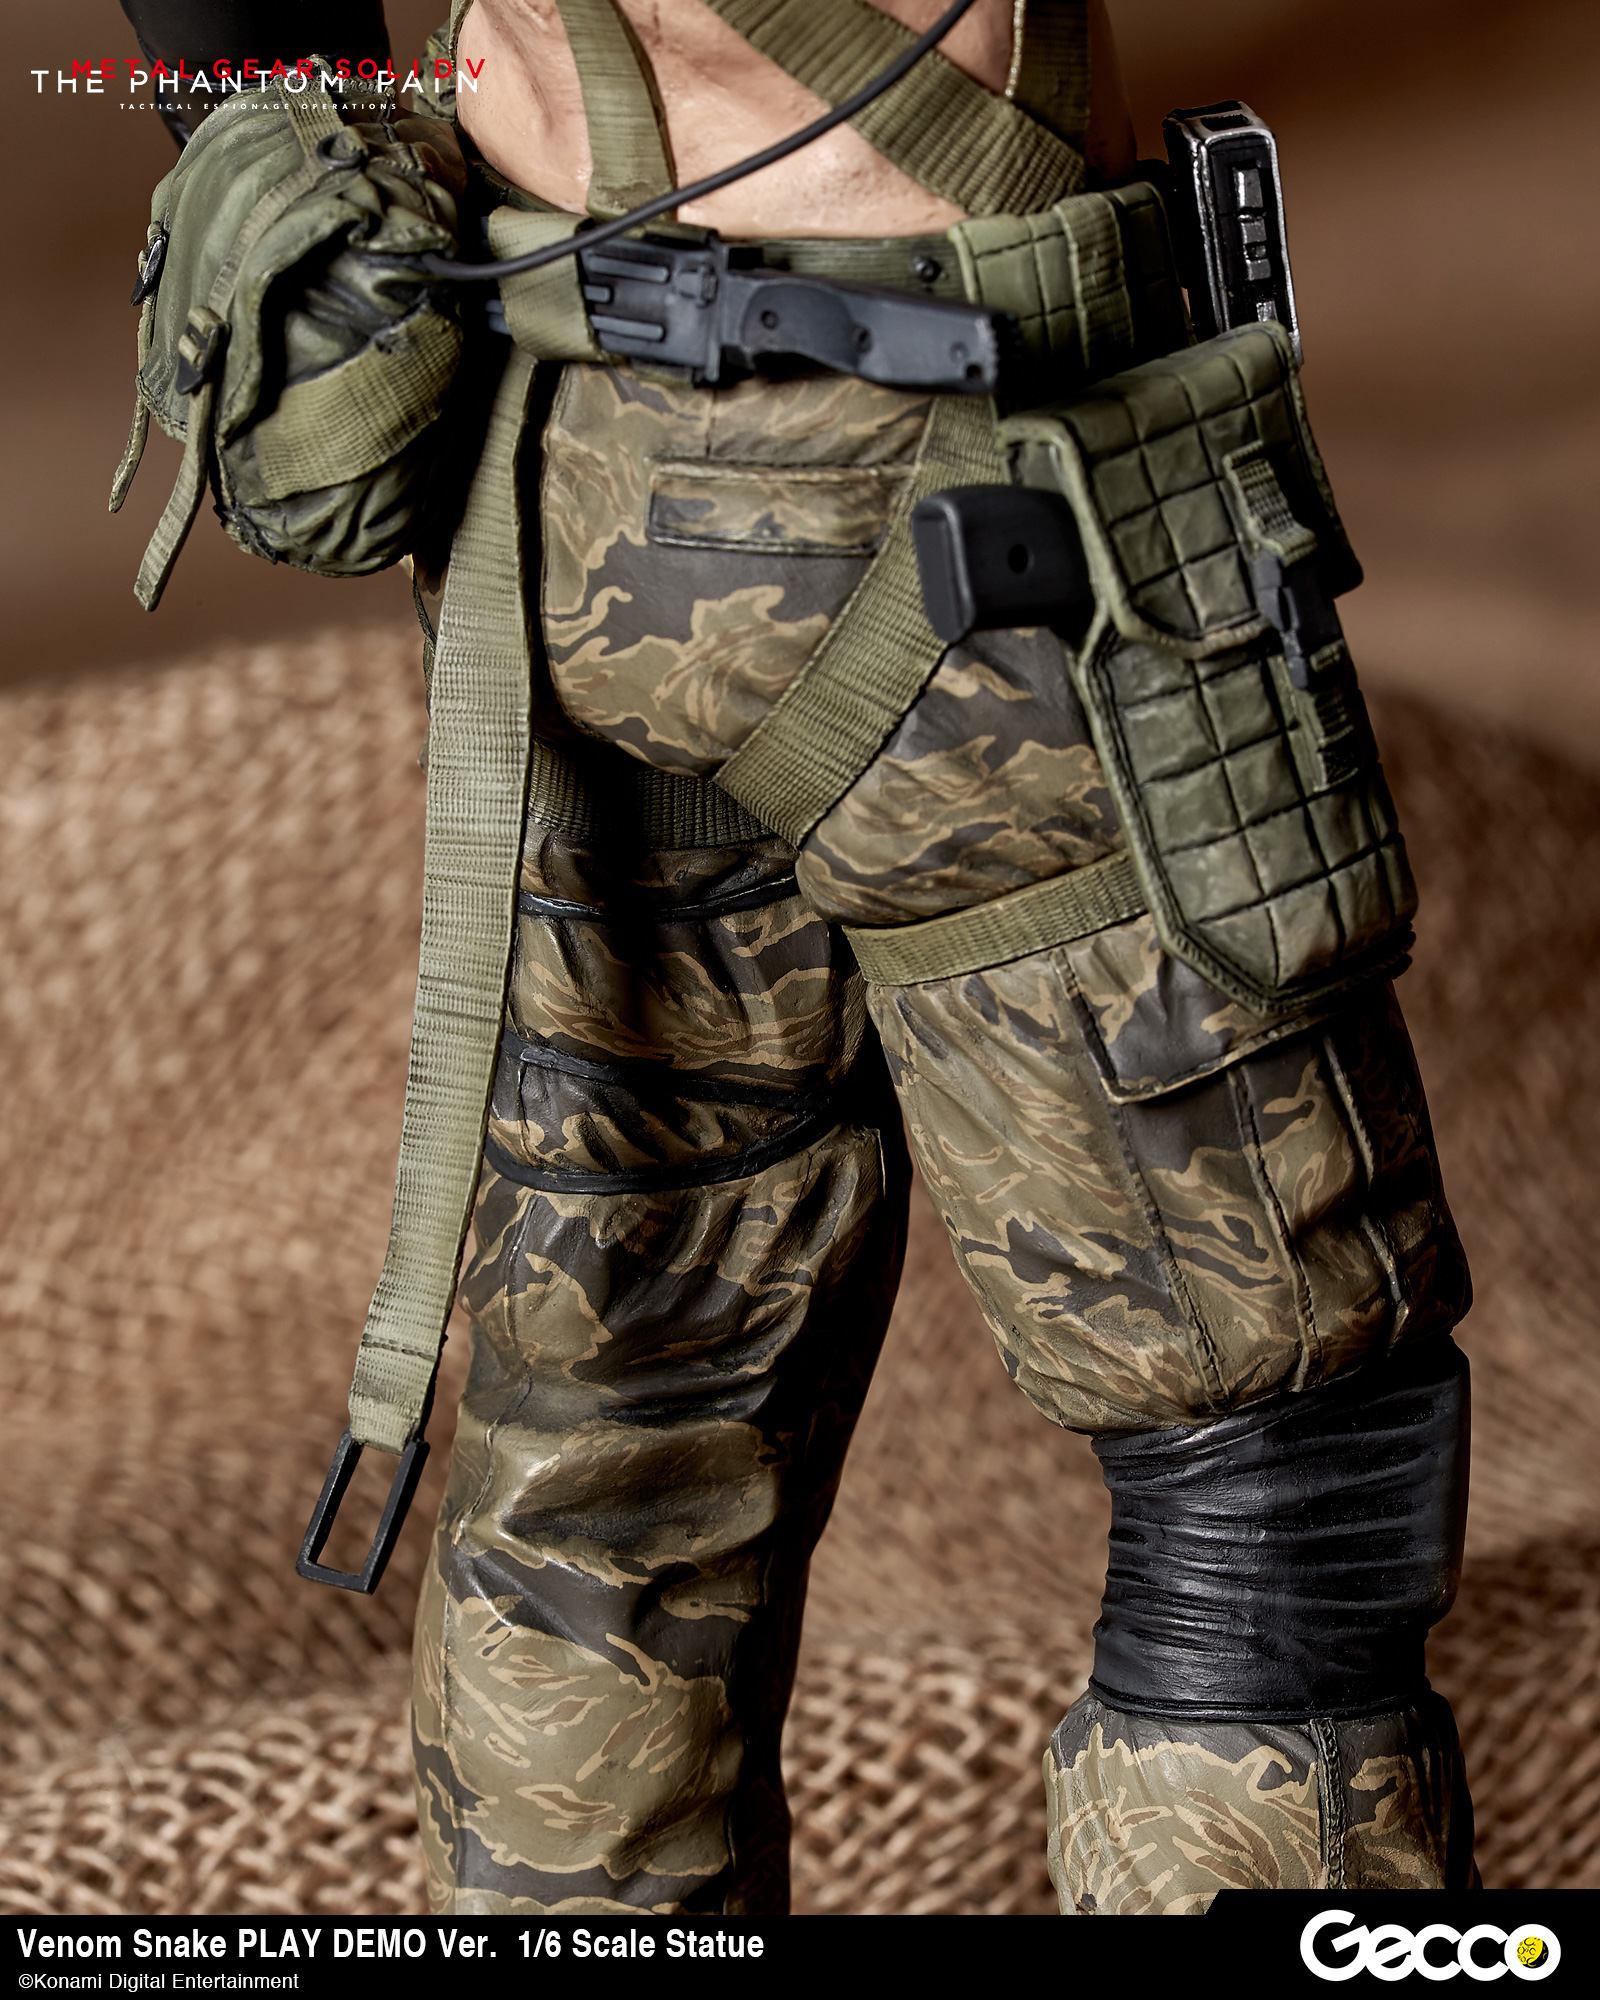 Shirtless Venom Snake Statue By Gecco Comes With Three